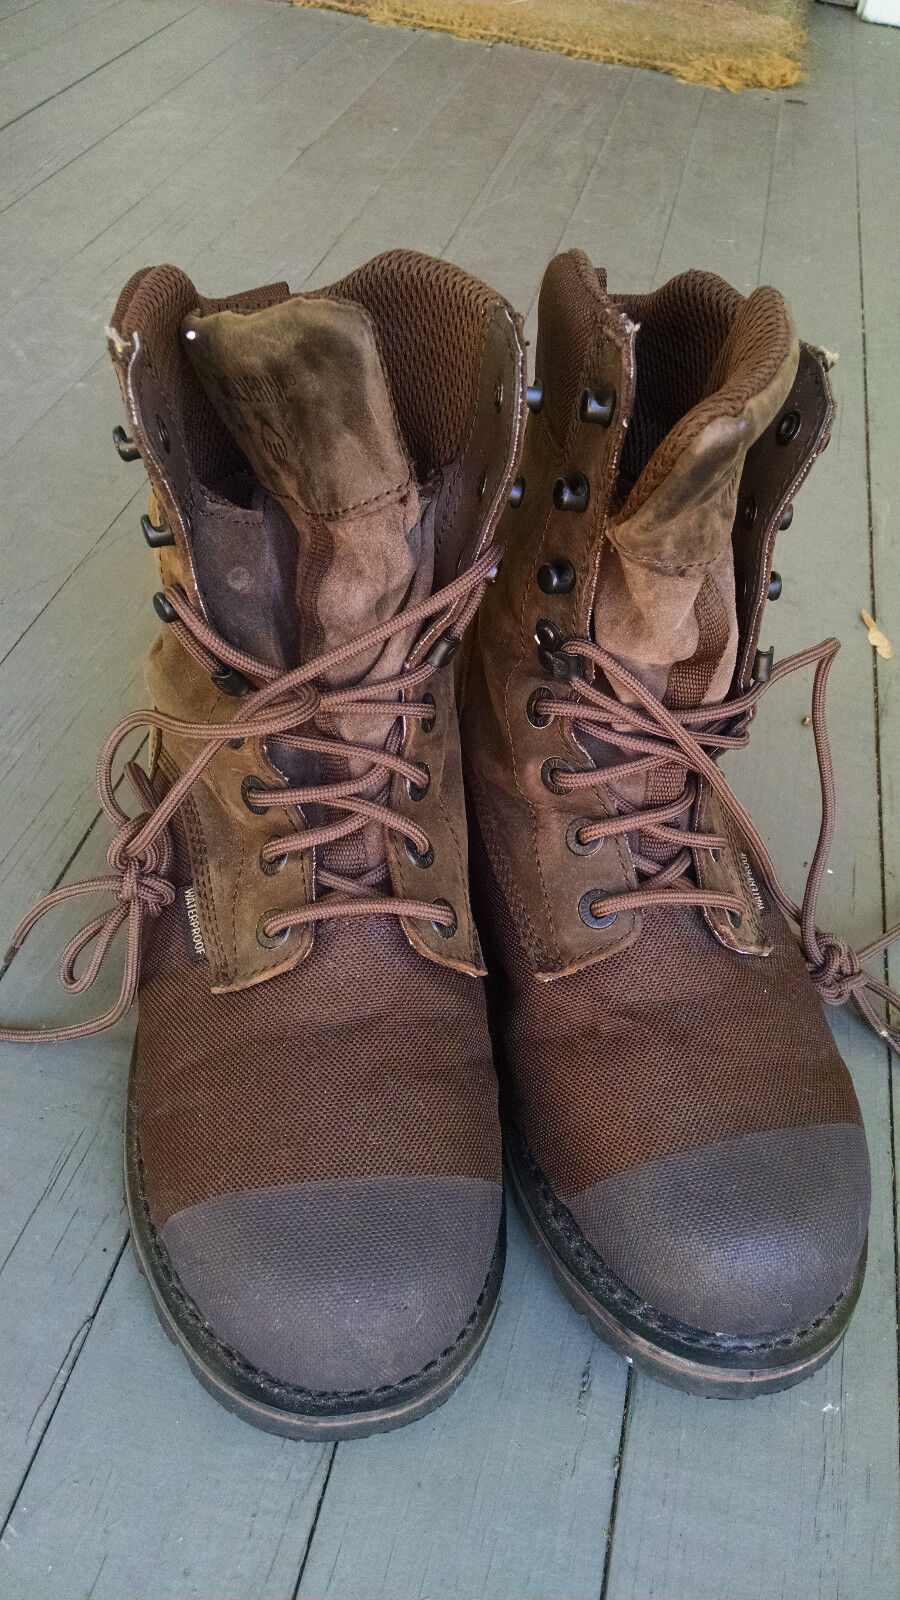 d2241763d33 Wolverine mens boots size 7 EW leather waterproof insulated hard toe W07911